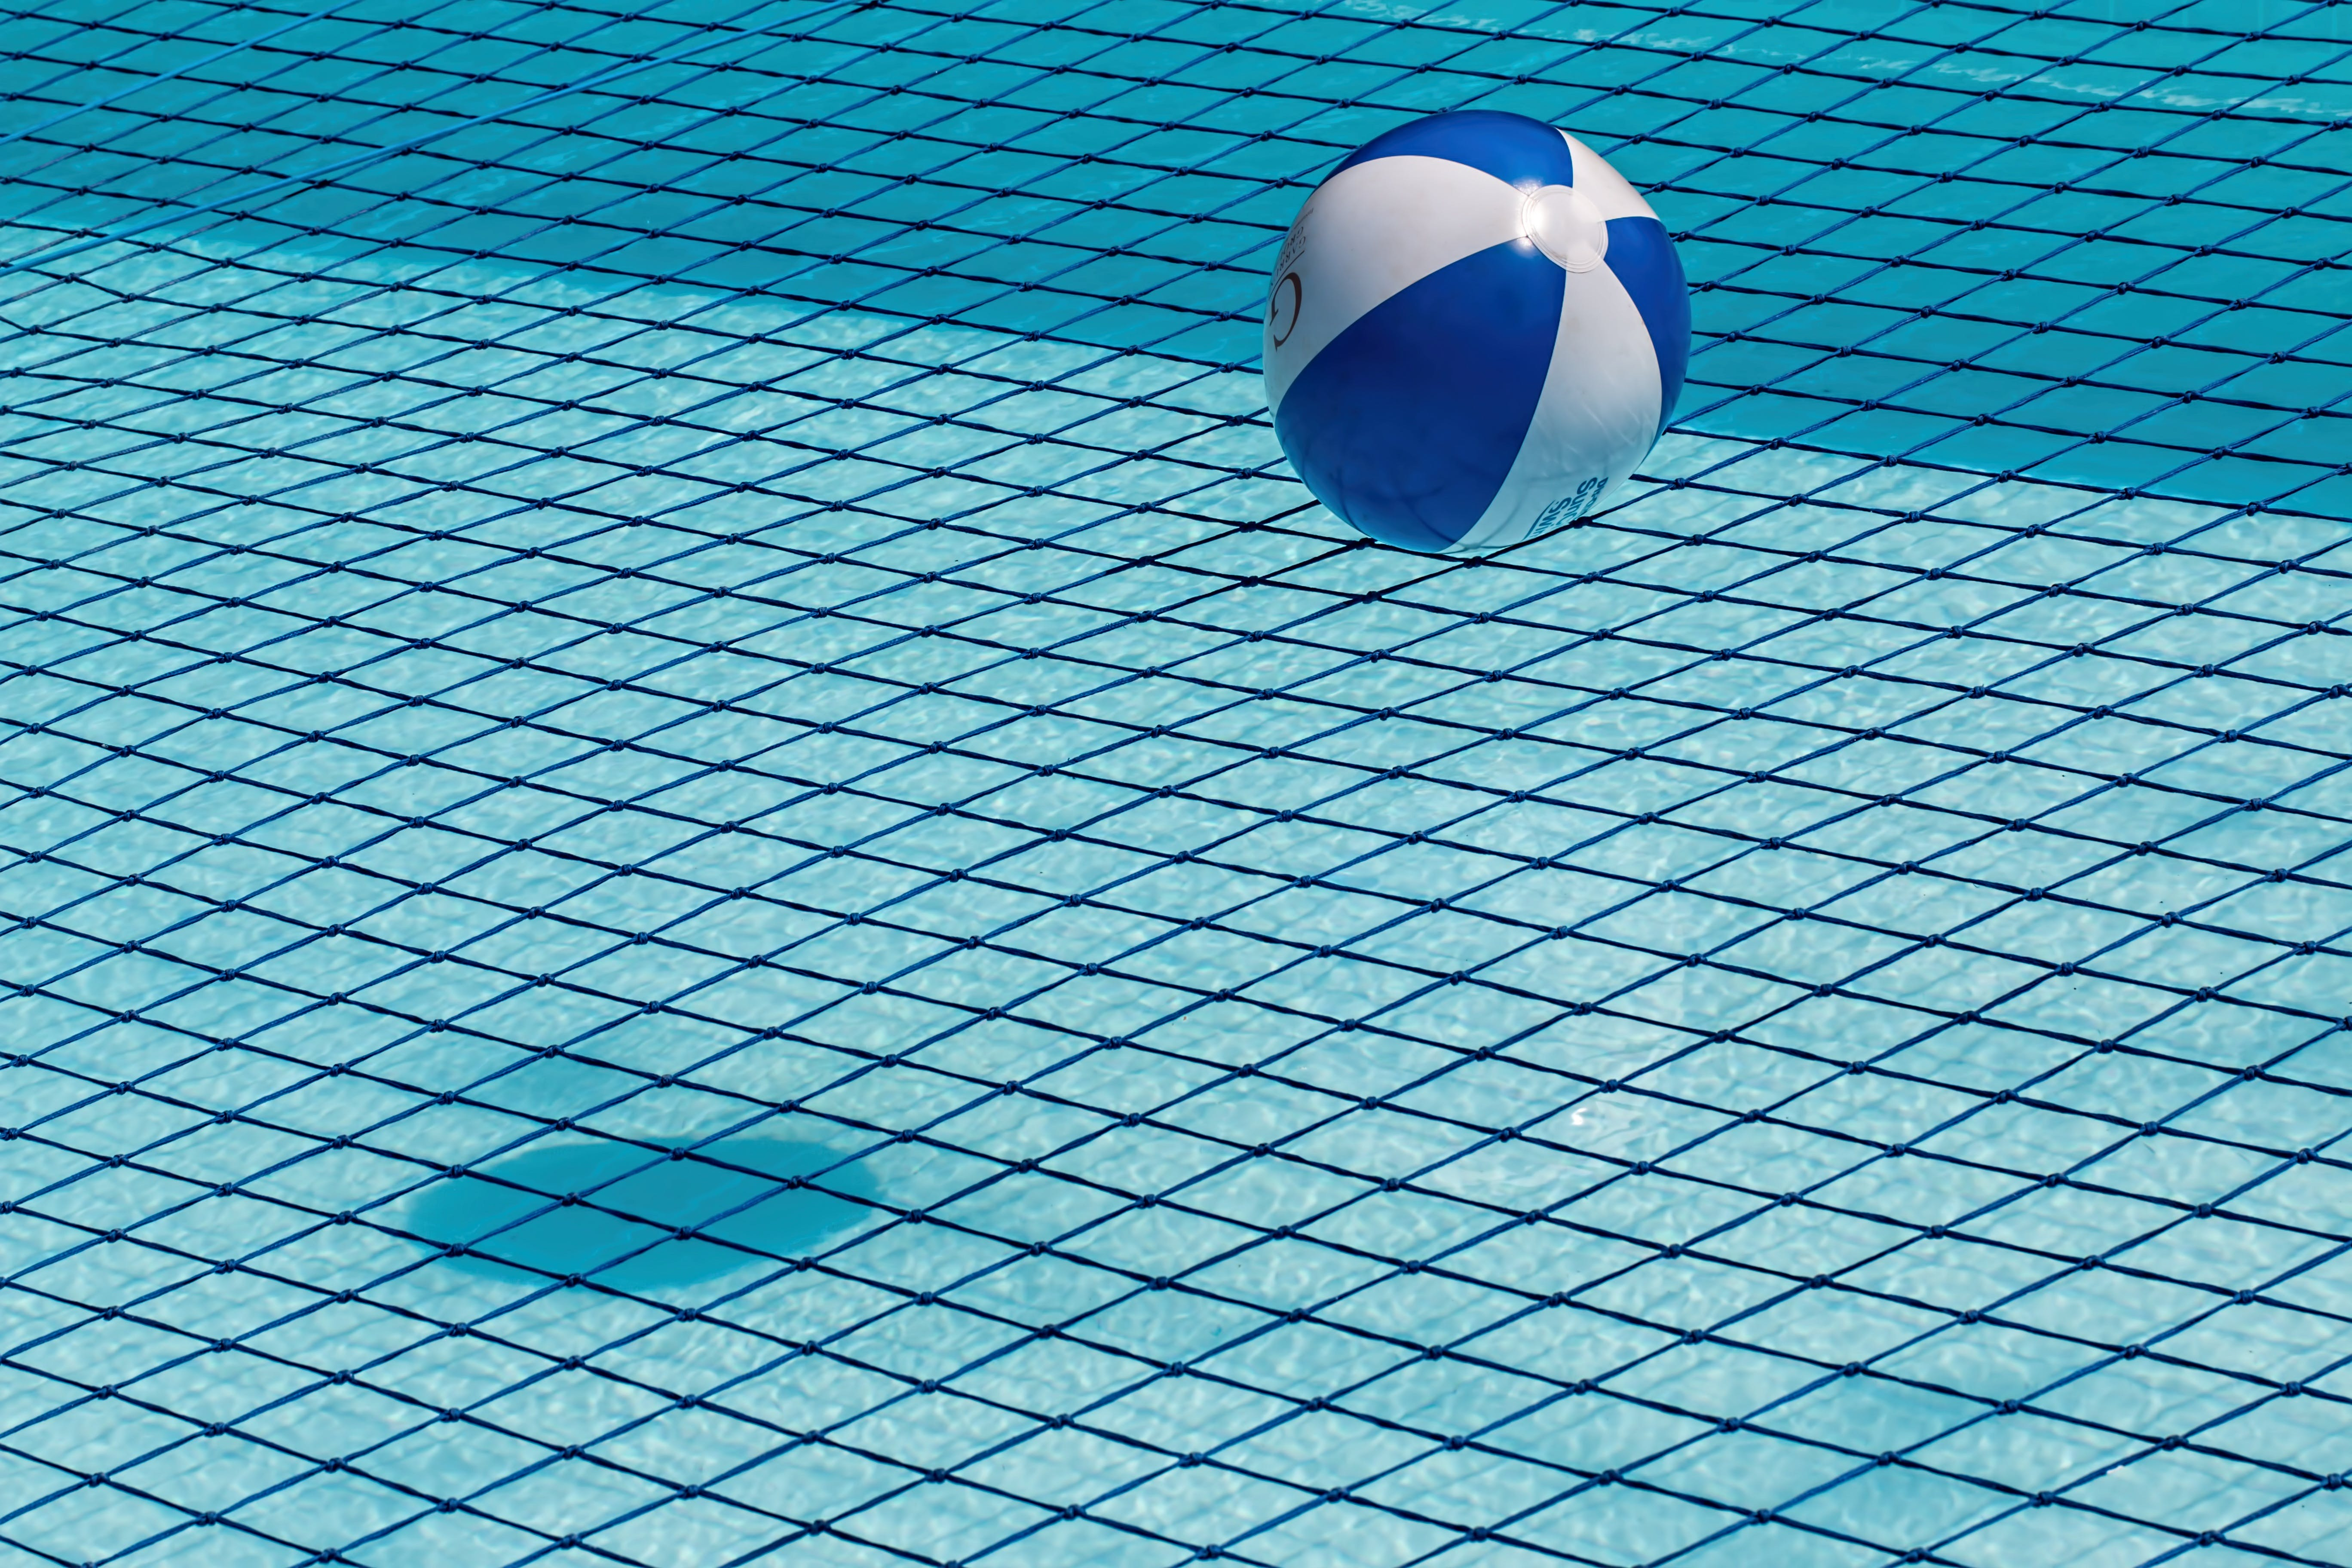 Blue and White Ball over Water